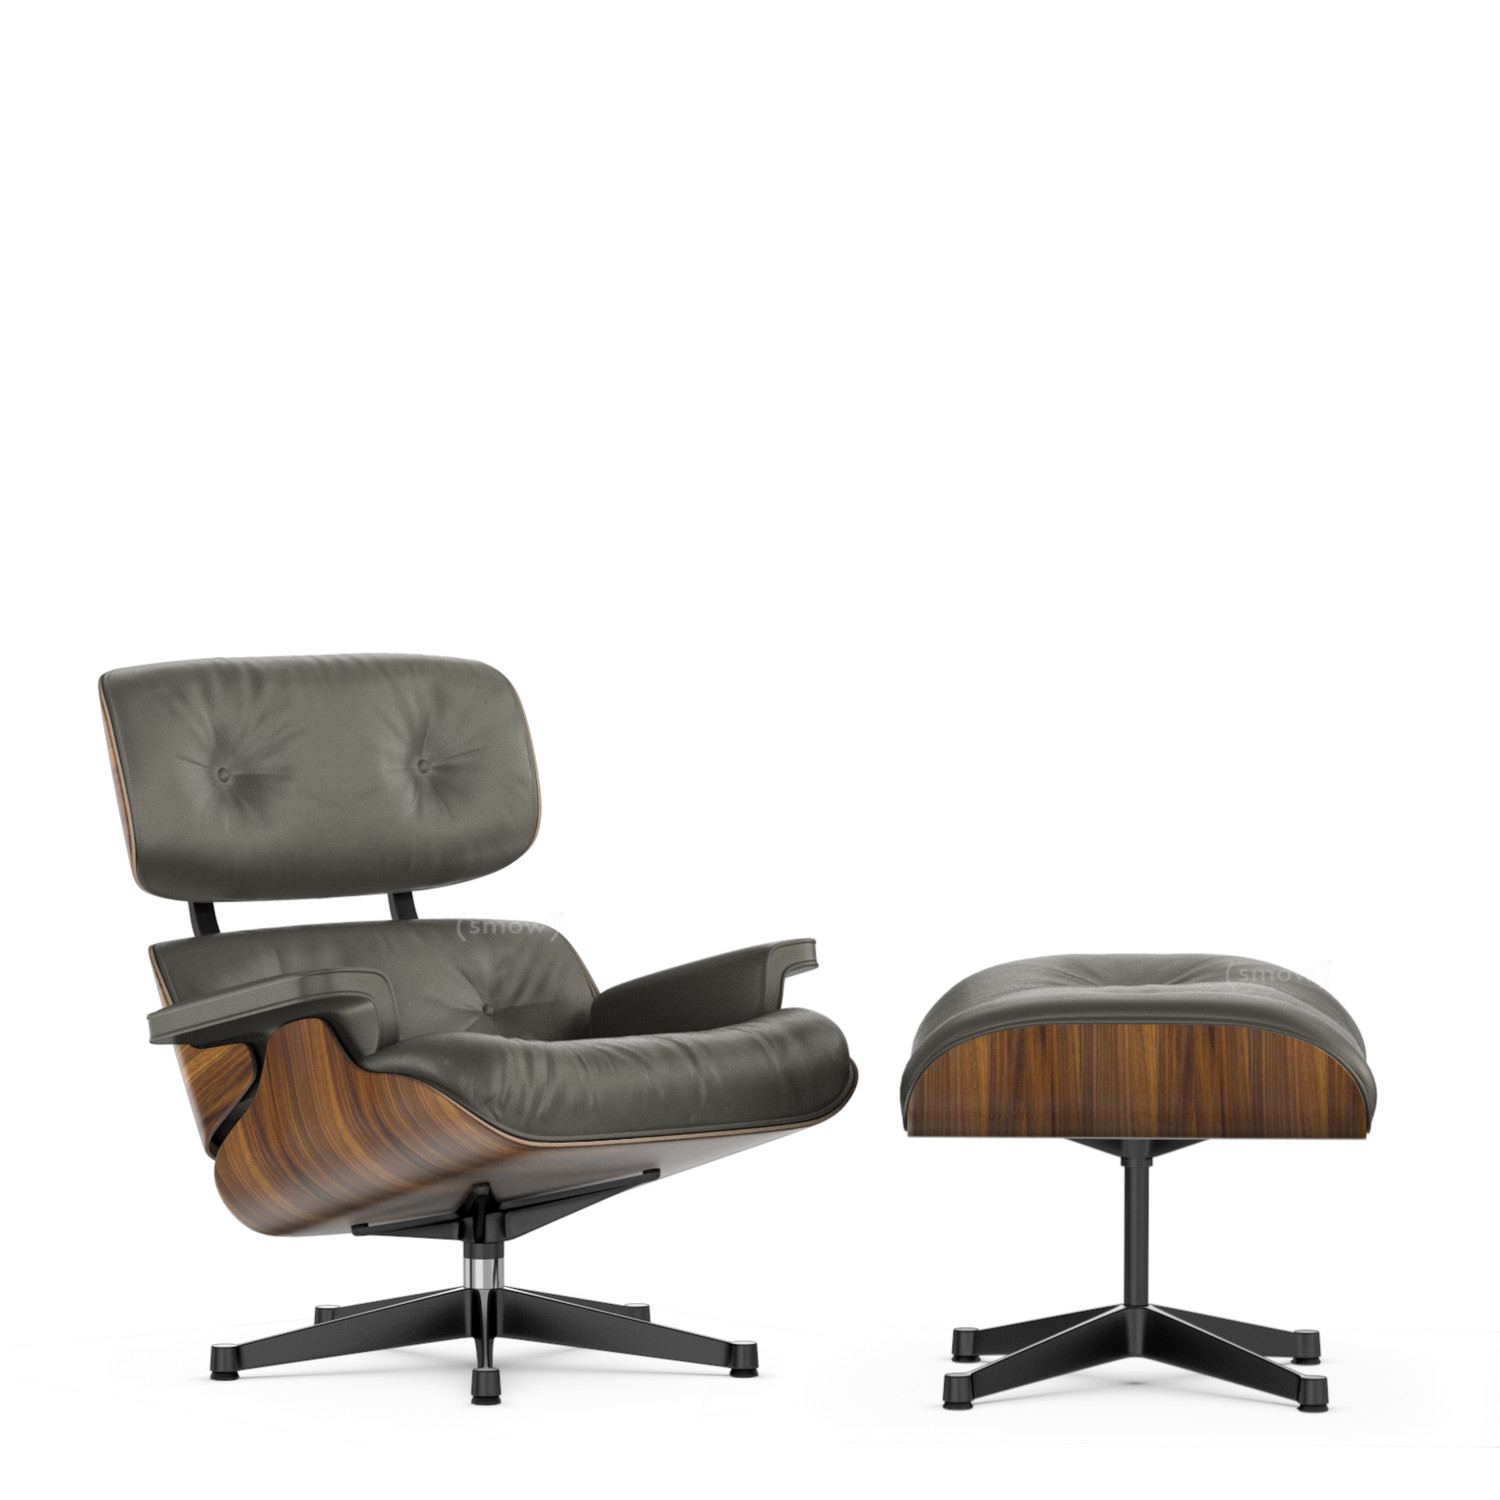 office chair with ottoman wing back slipcover pattern vitra lounge beauty versions by charles ray